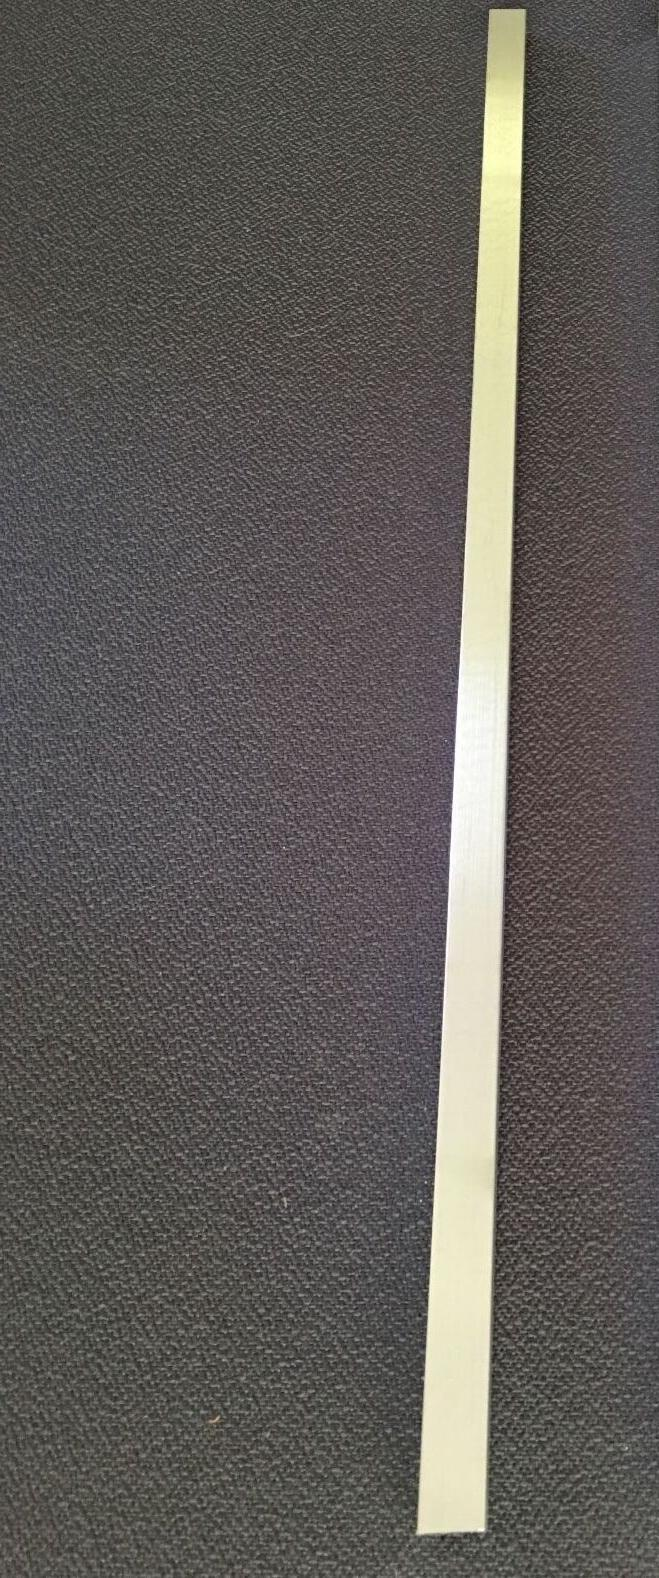 1 ALUMINUM ...SECURITY YARD STAKES + HEAVY TAPE